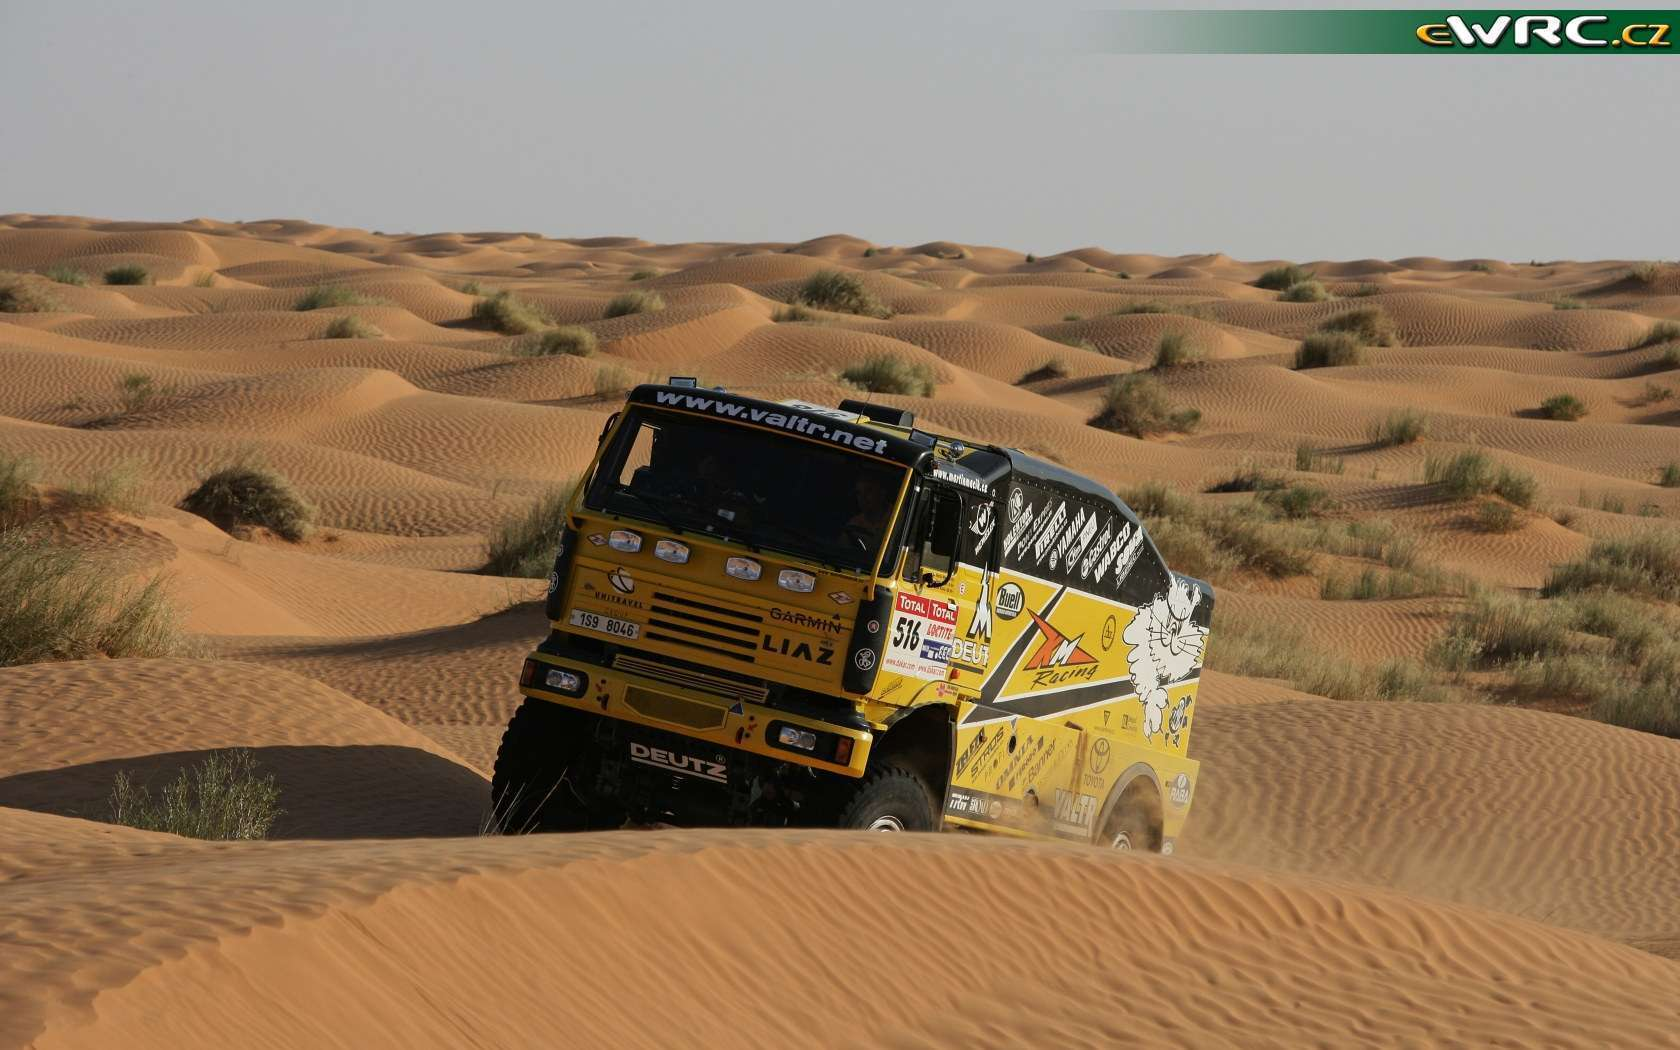 Dakar Rally 2010 Wallpaper